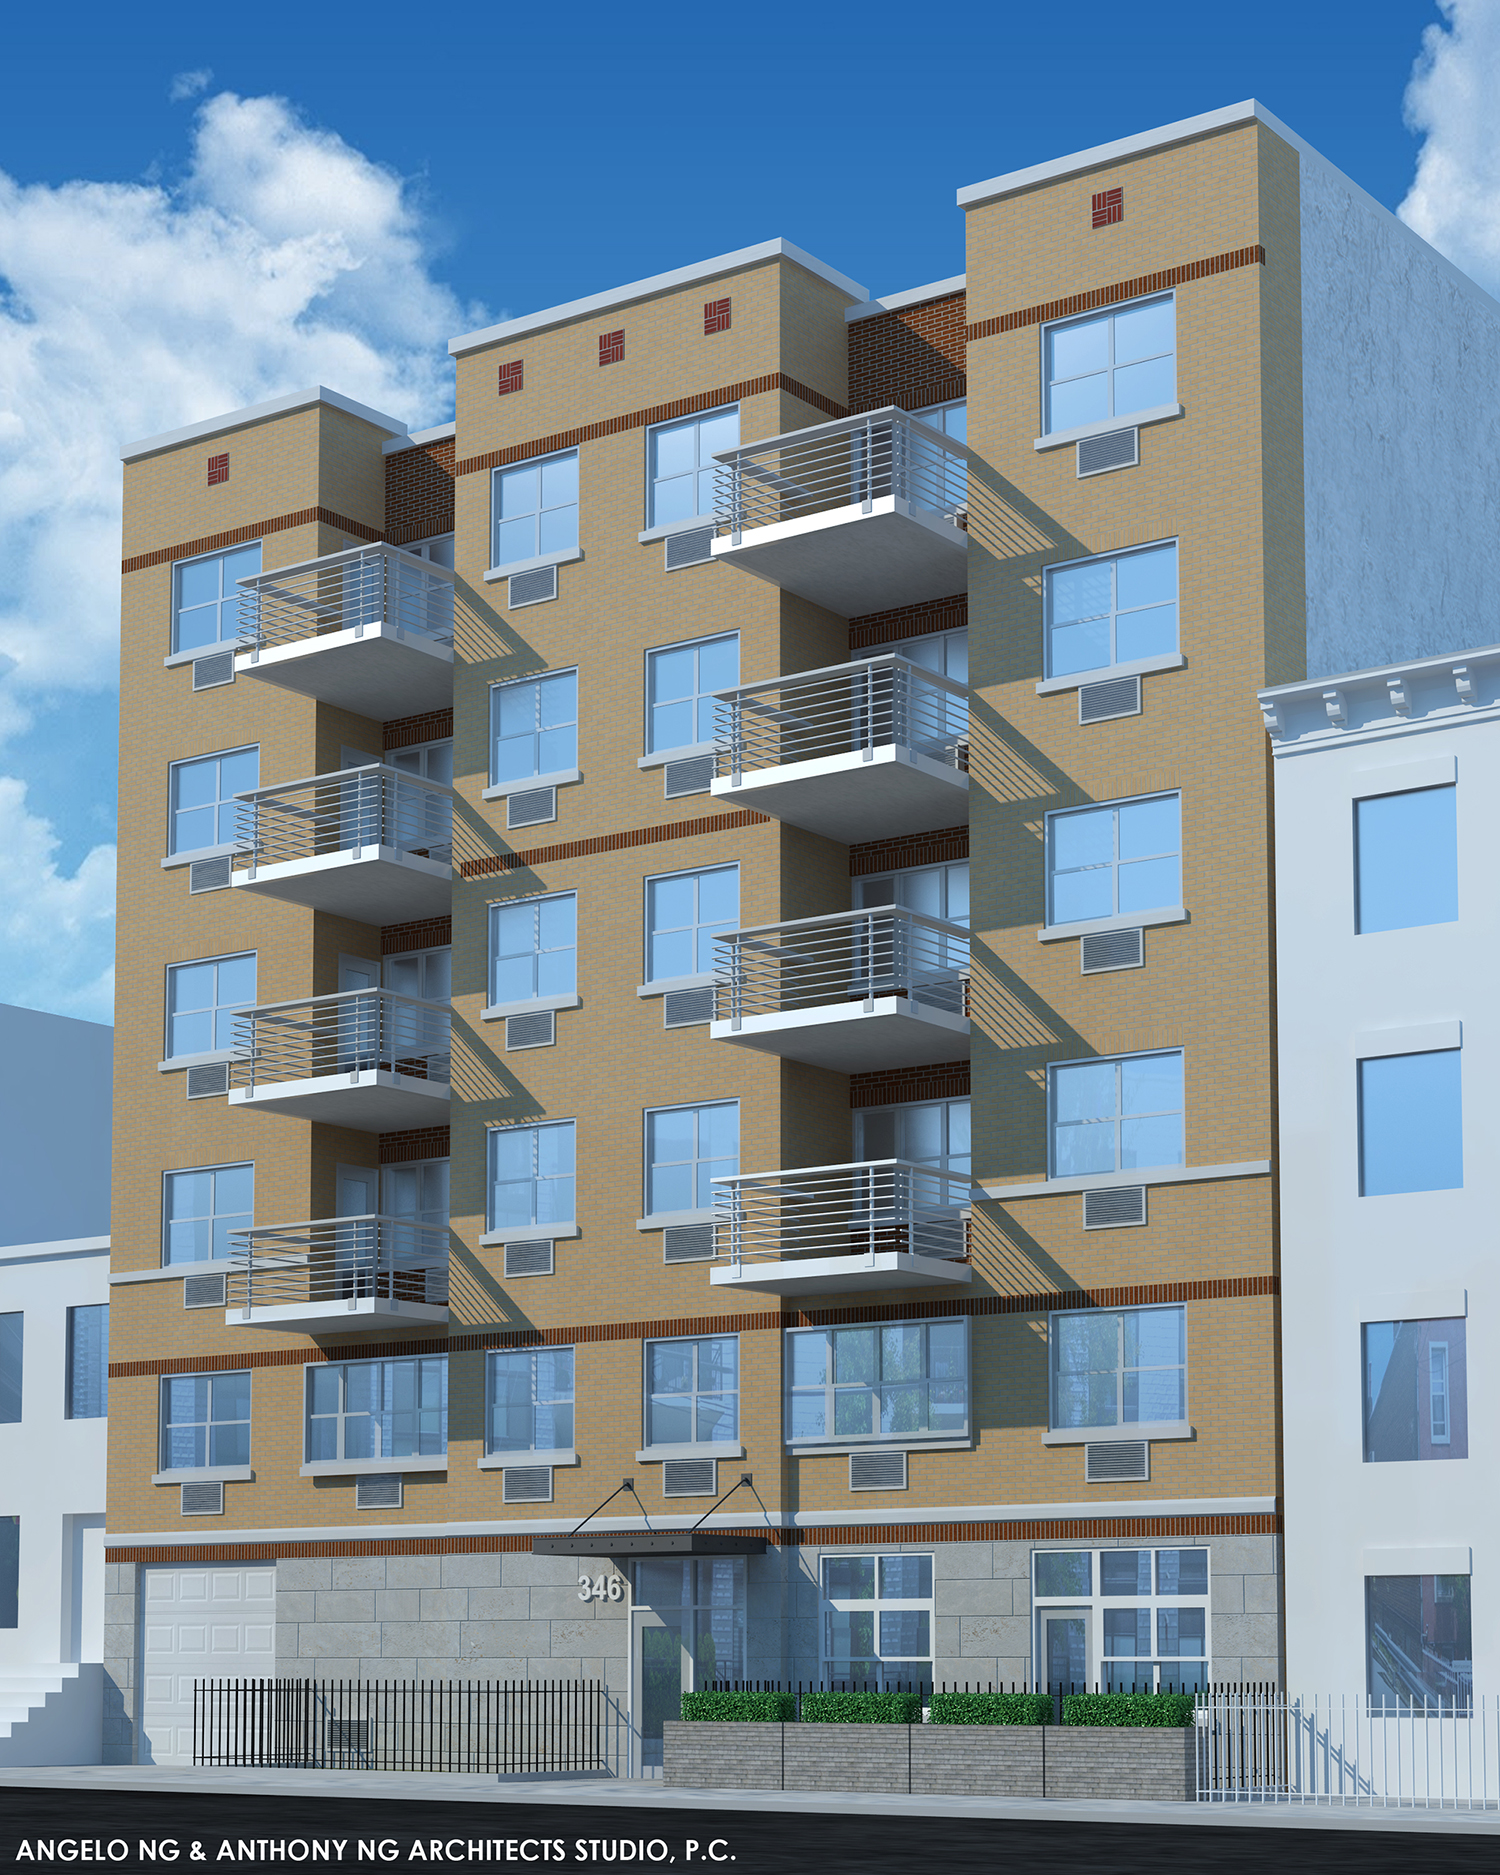 Forest Hill Village Apartments Ls: Revealed: Six-Story, 24-Unit Affordable Residential